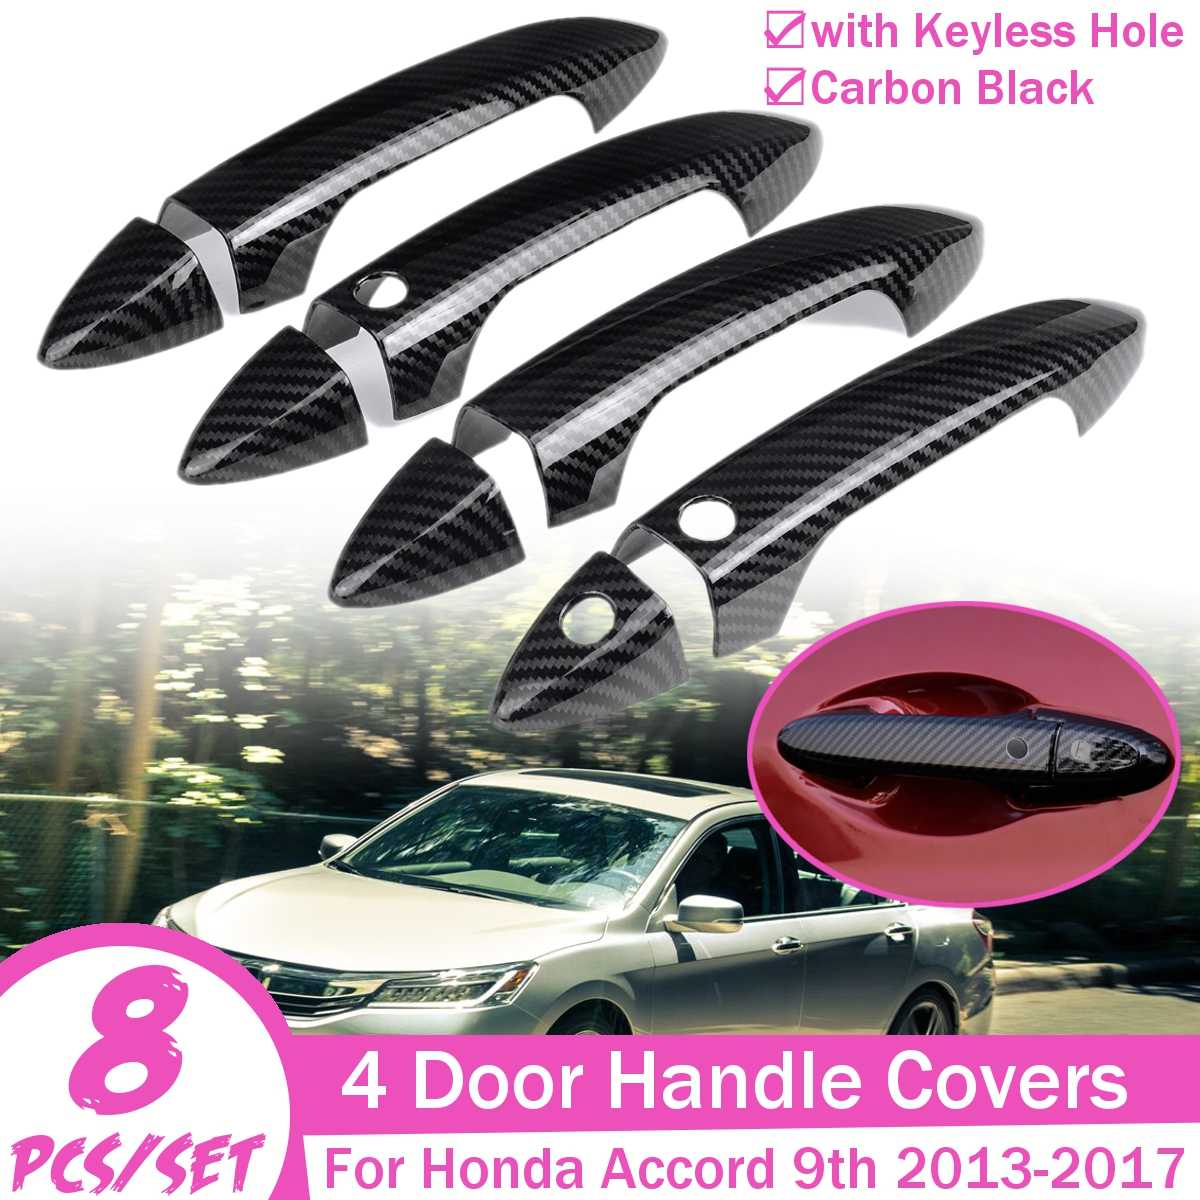 Car Exterior Door Handle Covers Trim Carbon Black Car Styling For Honda for Accord 9th 2013 2014 2015 2016 2017|Exterior Door Handles| |  - title=